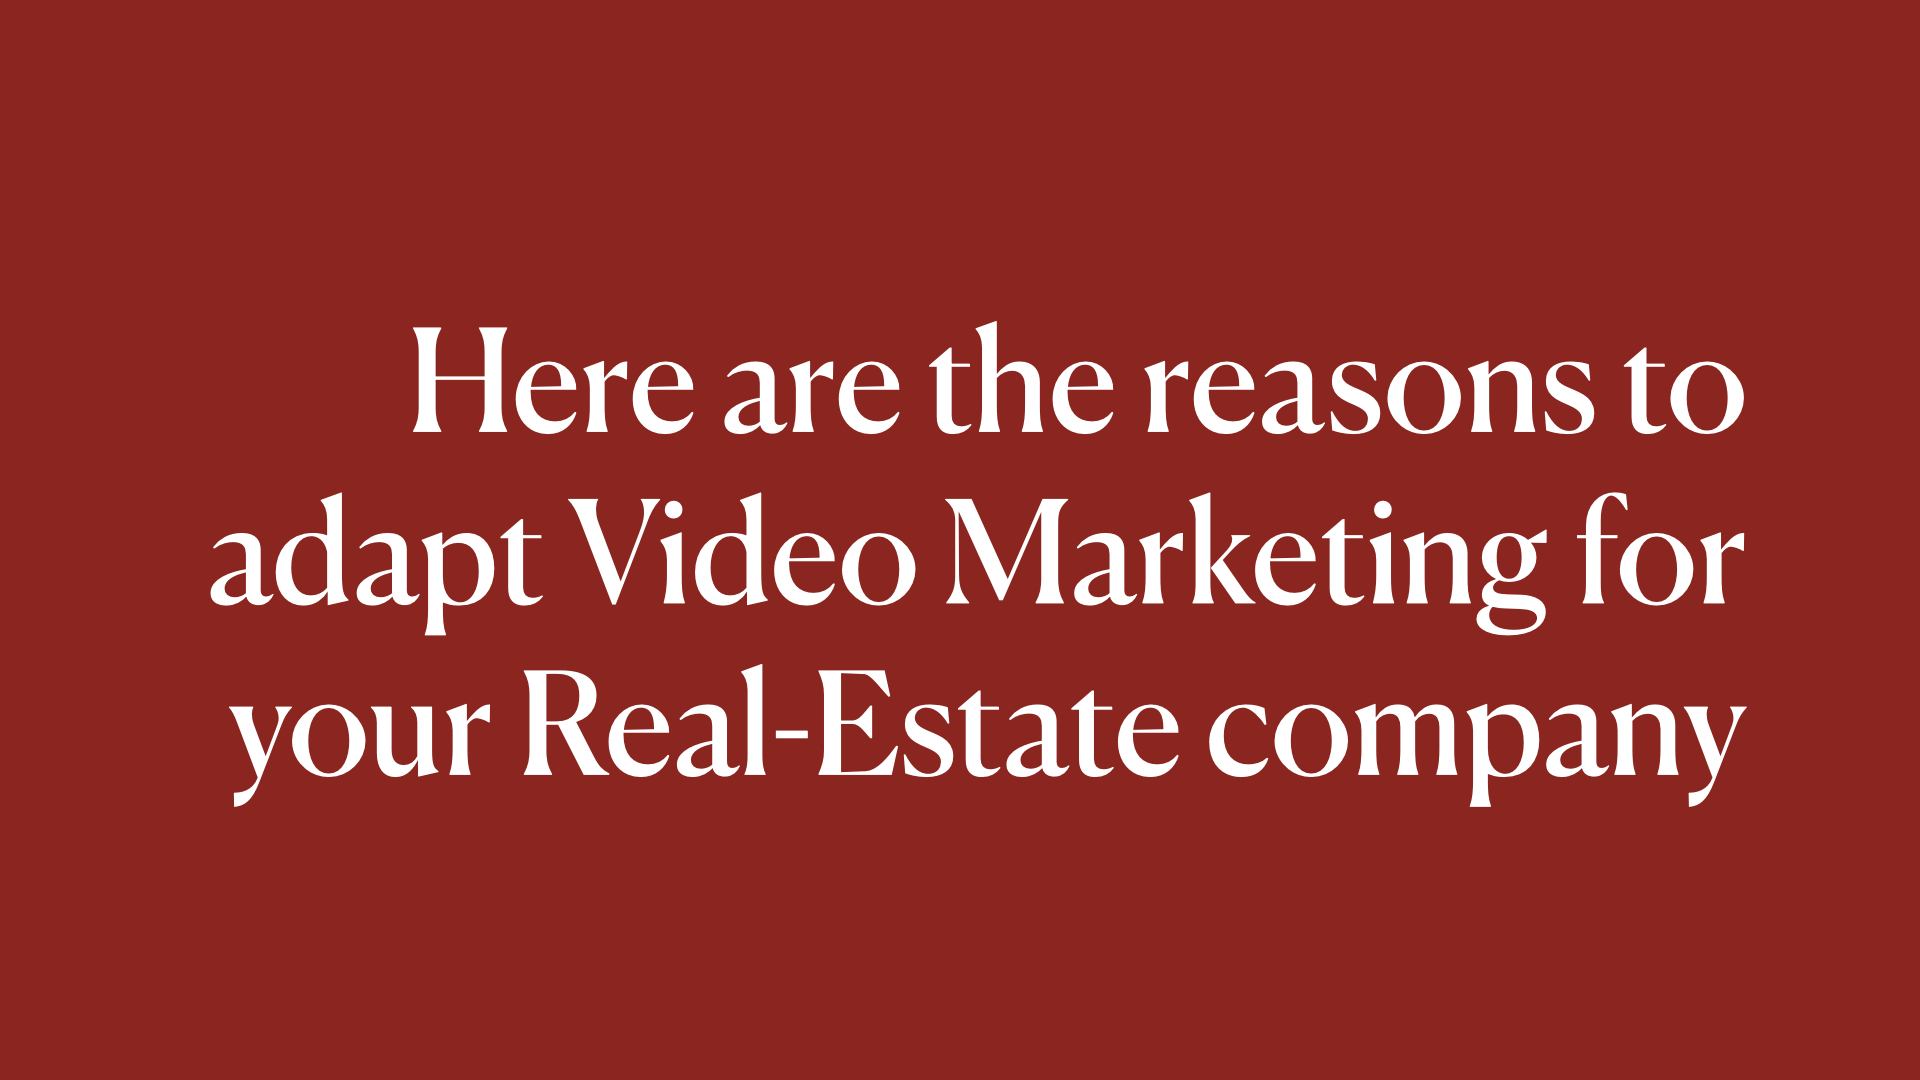 These are the reasons to adapt Video Marketing for your Real-Estate company